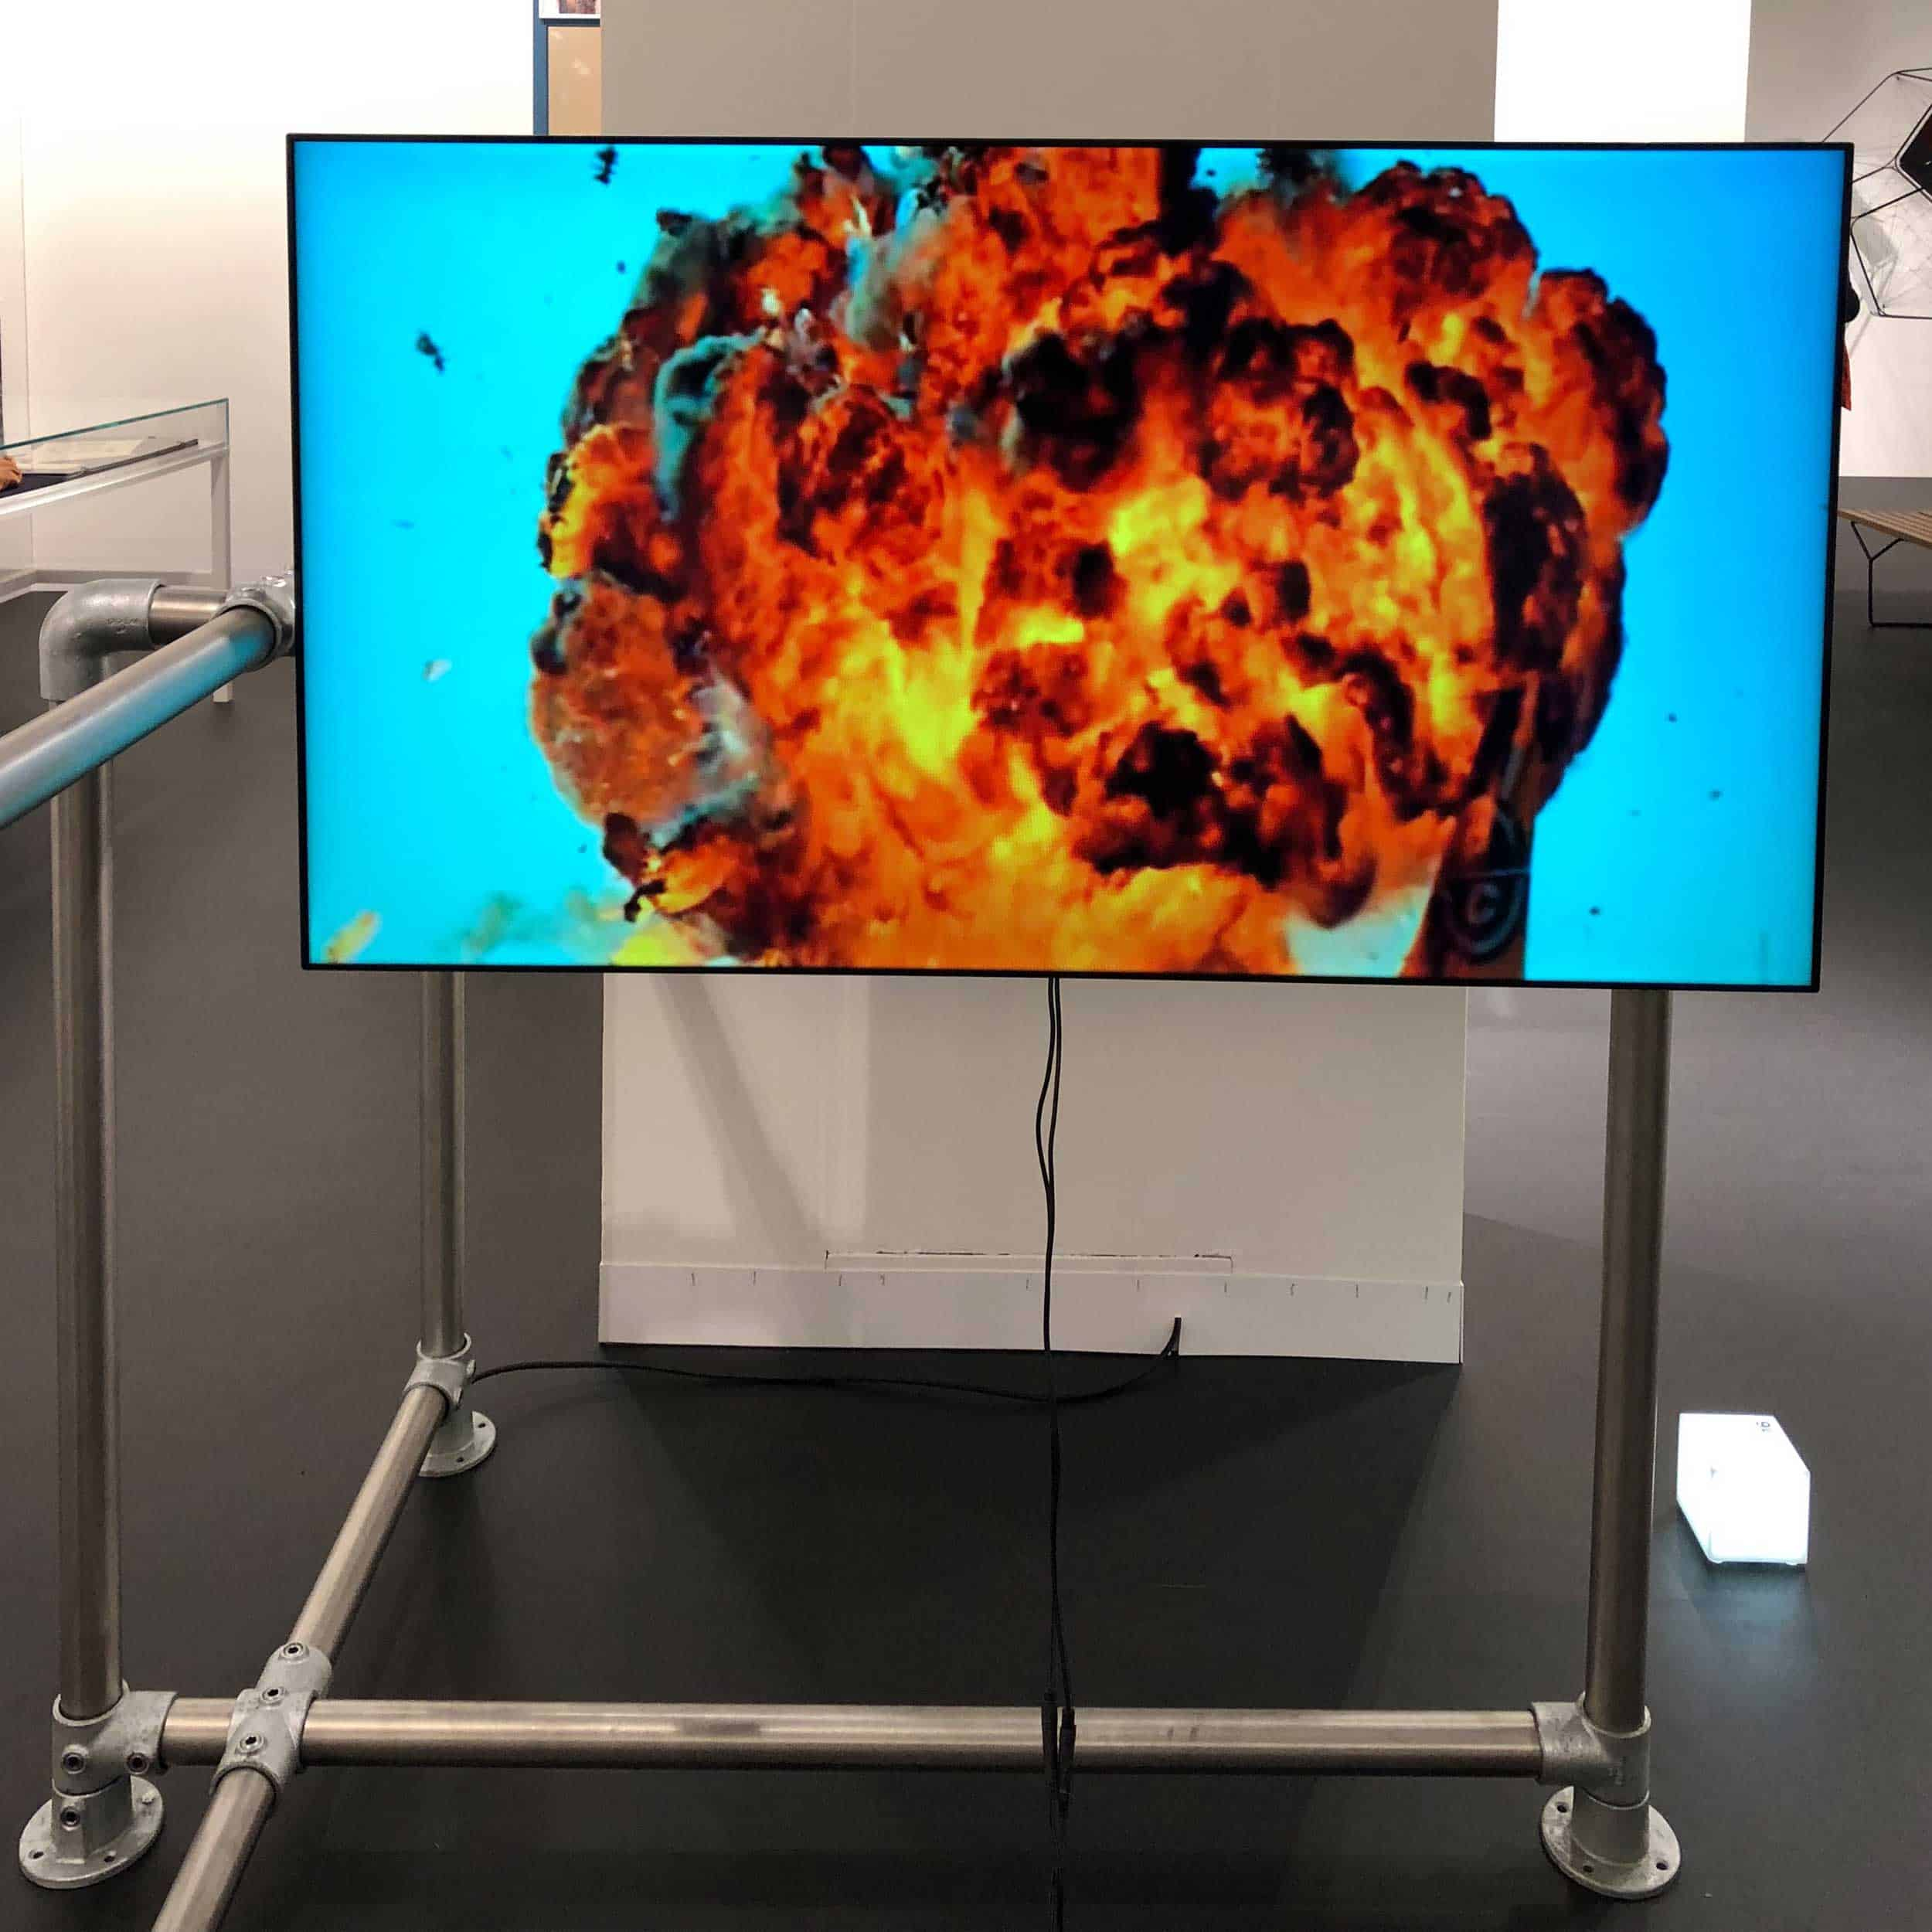 Hito Steyerl, After the Crash, Ester Shipper Gallery